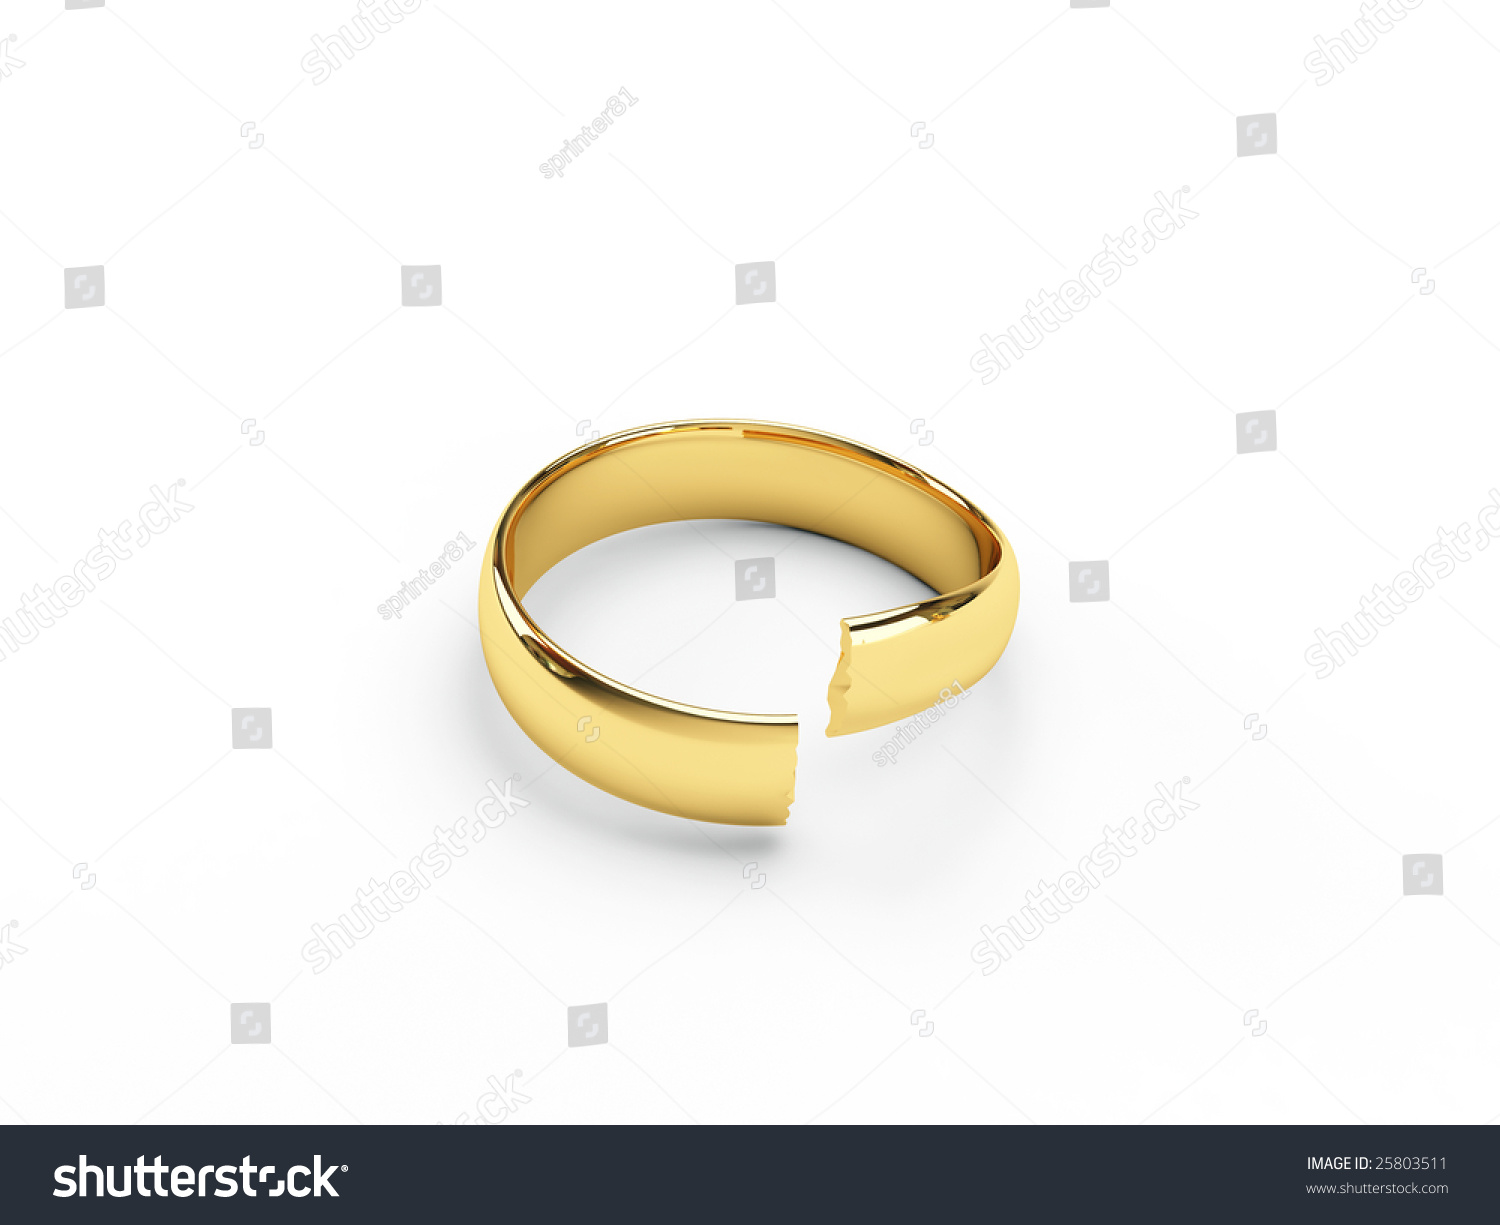 circular where these lines and to orsini the wedding design broken curved rings changes real objects form en symbolic are trendy asymmetry shop